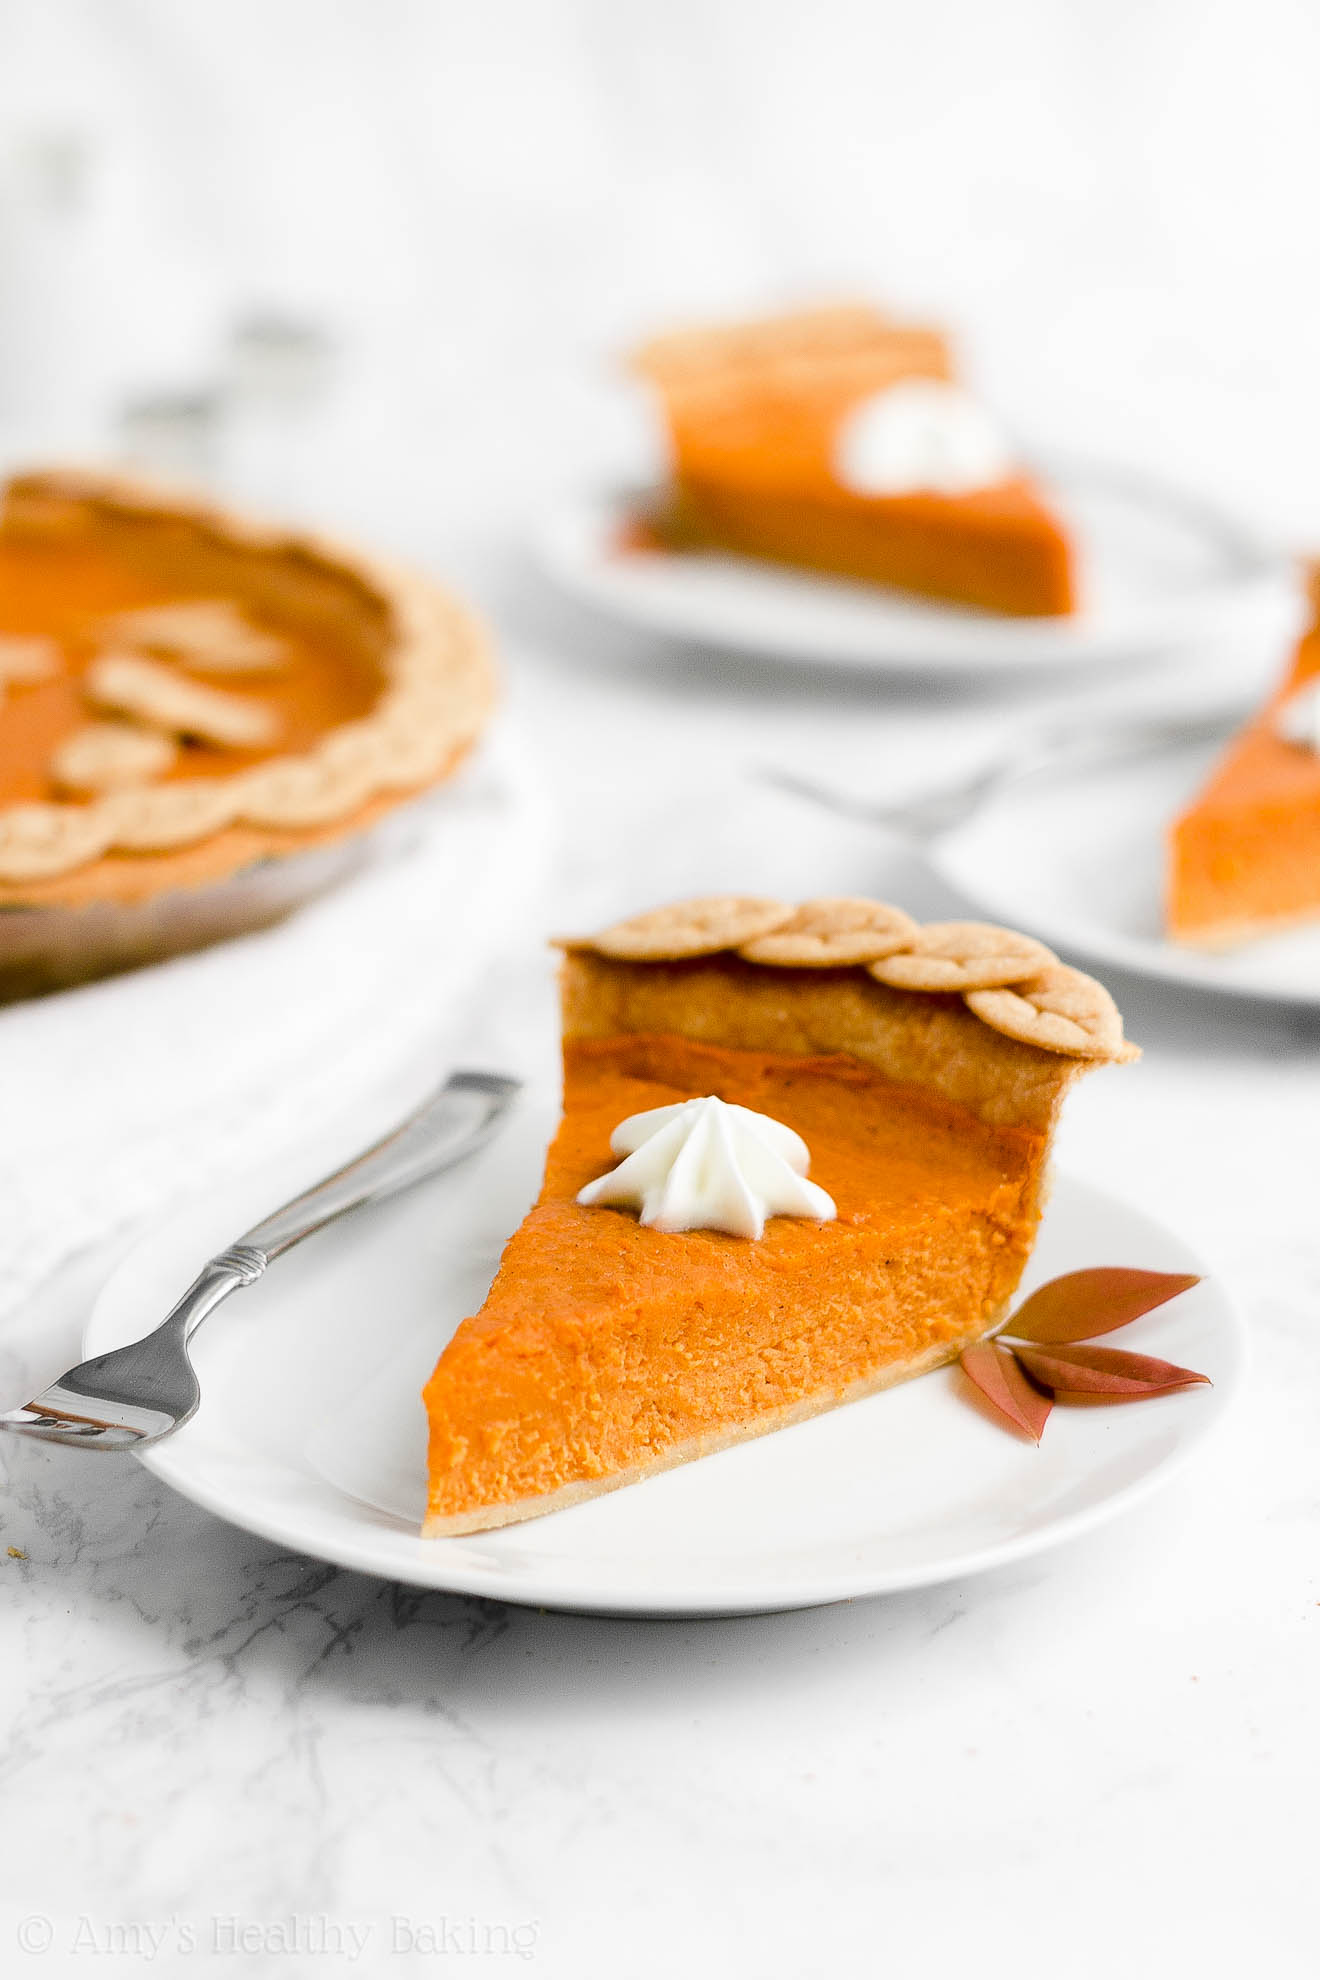 ULTIMATE Best Ever Healthy Gluten Free No Sugar Thanksgiving Sweet Potato Pie